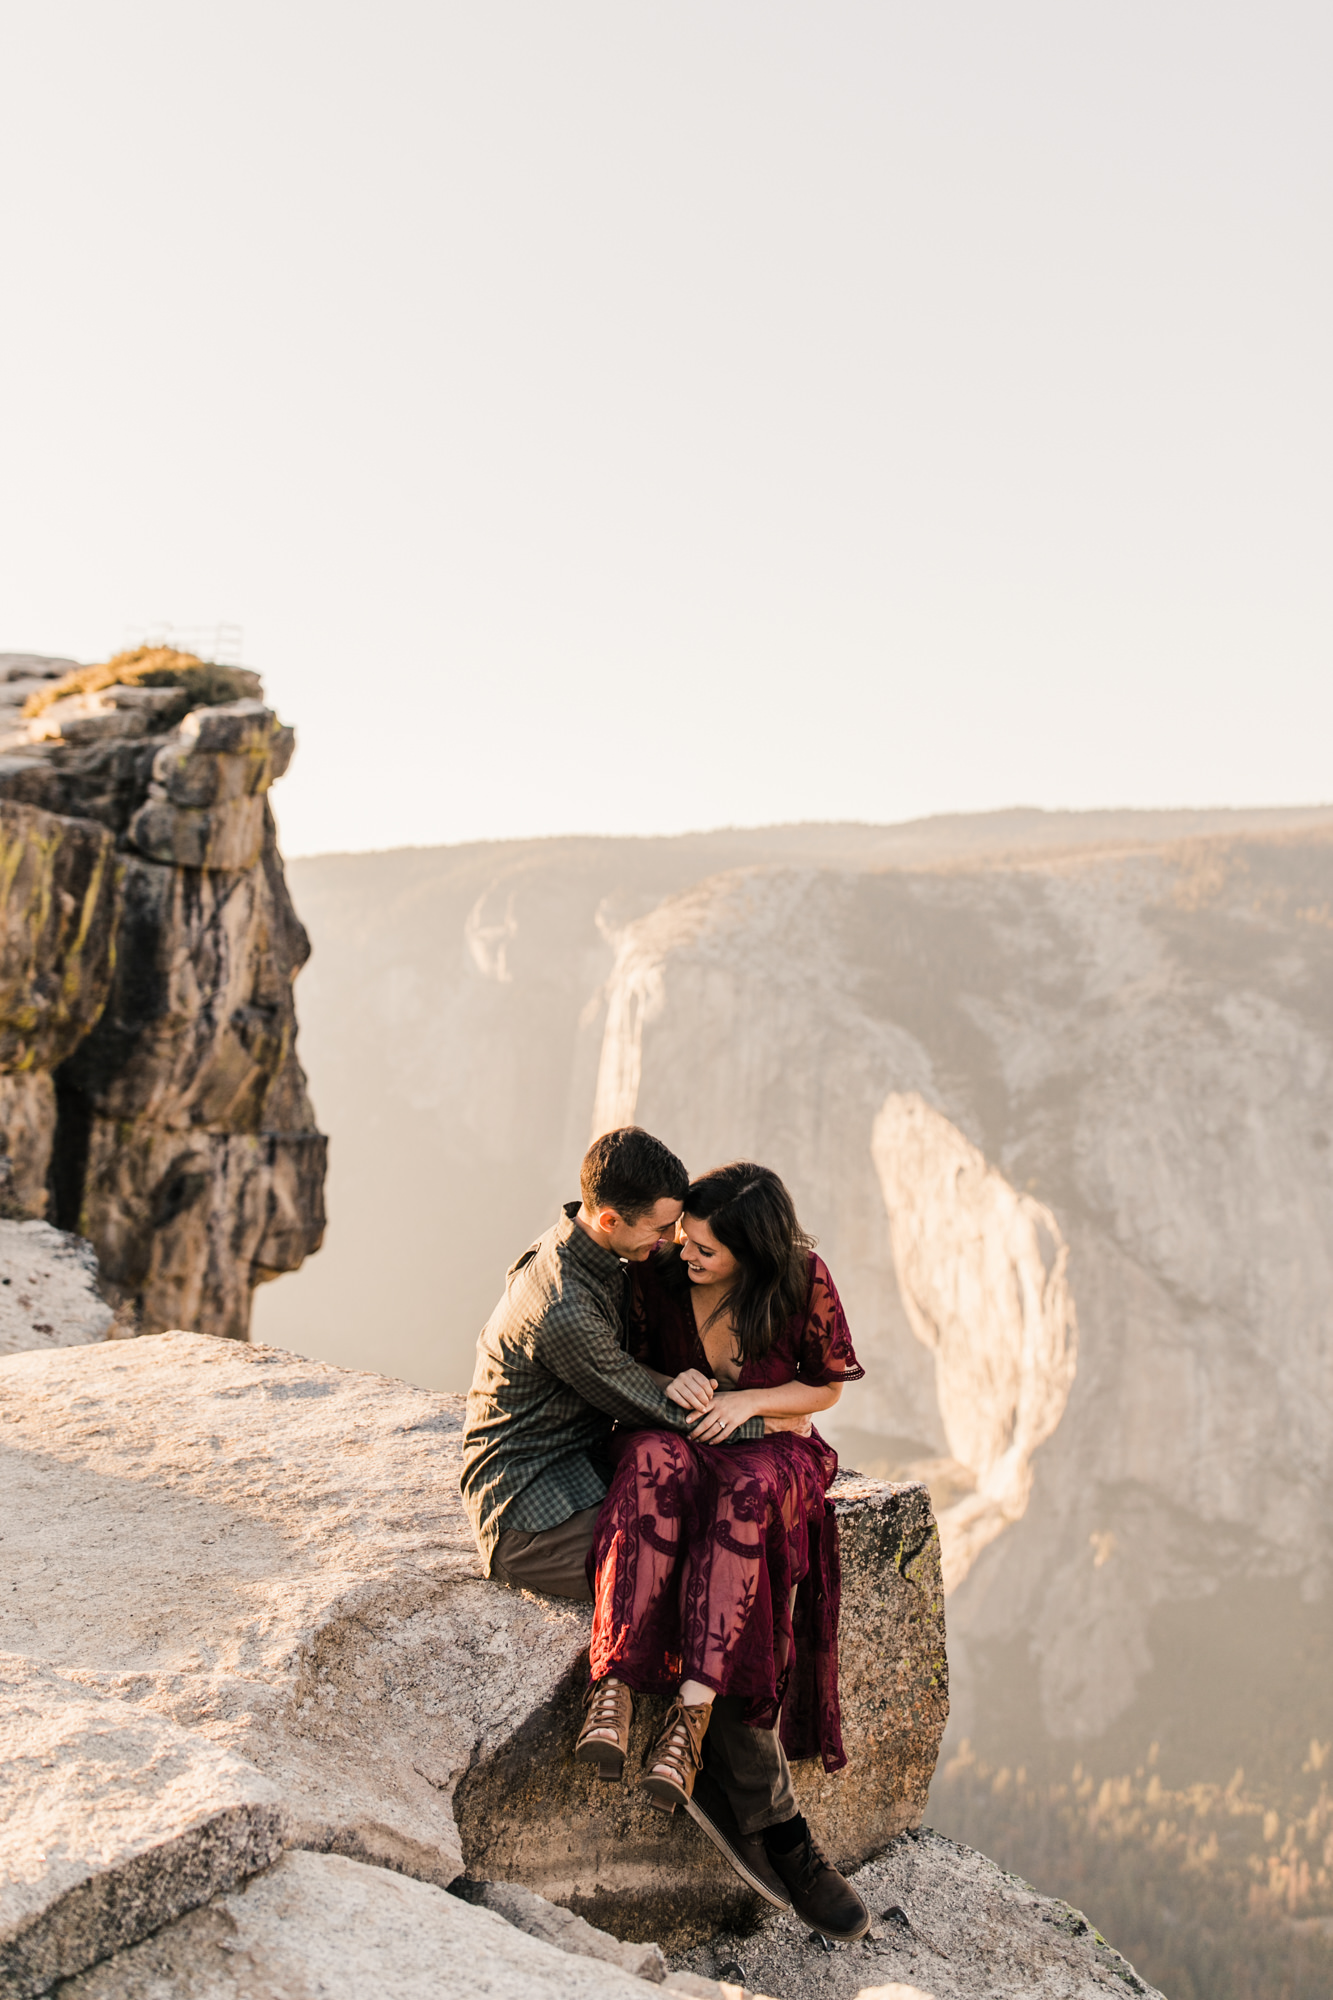 rachel + seth's adventurous taft point engagement session | yosemite national park | california adventure elopement photographer | the hearnes adventure photography | www.thehearnes.com